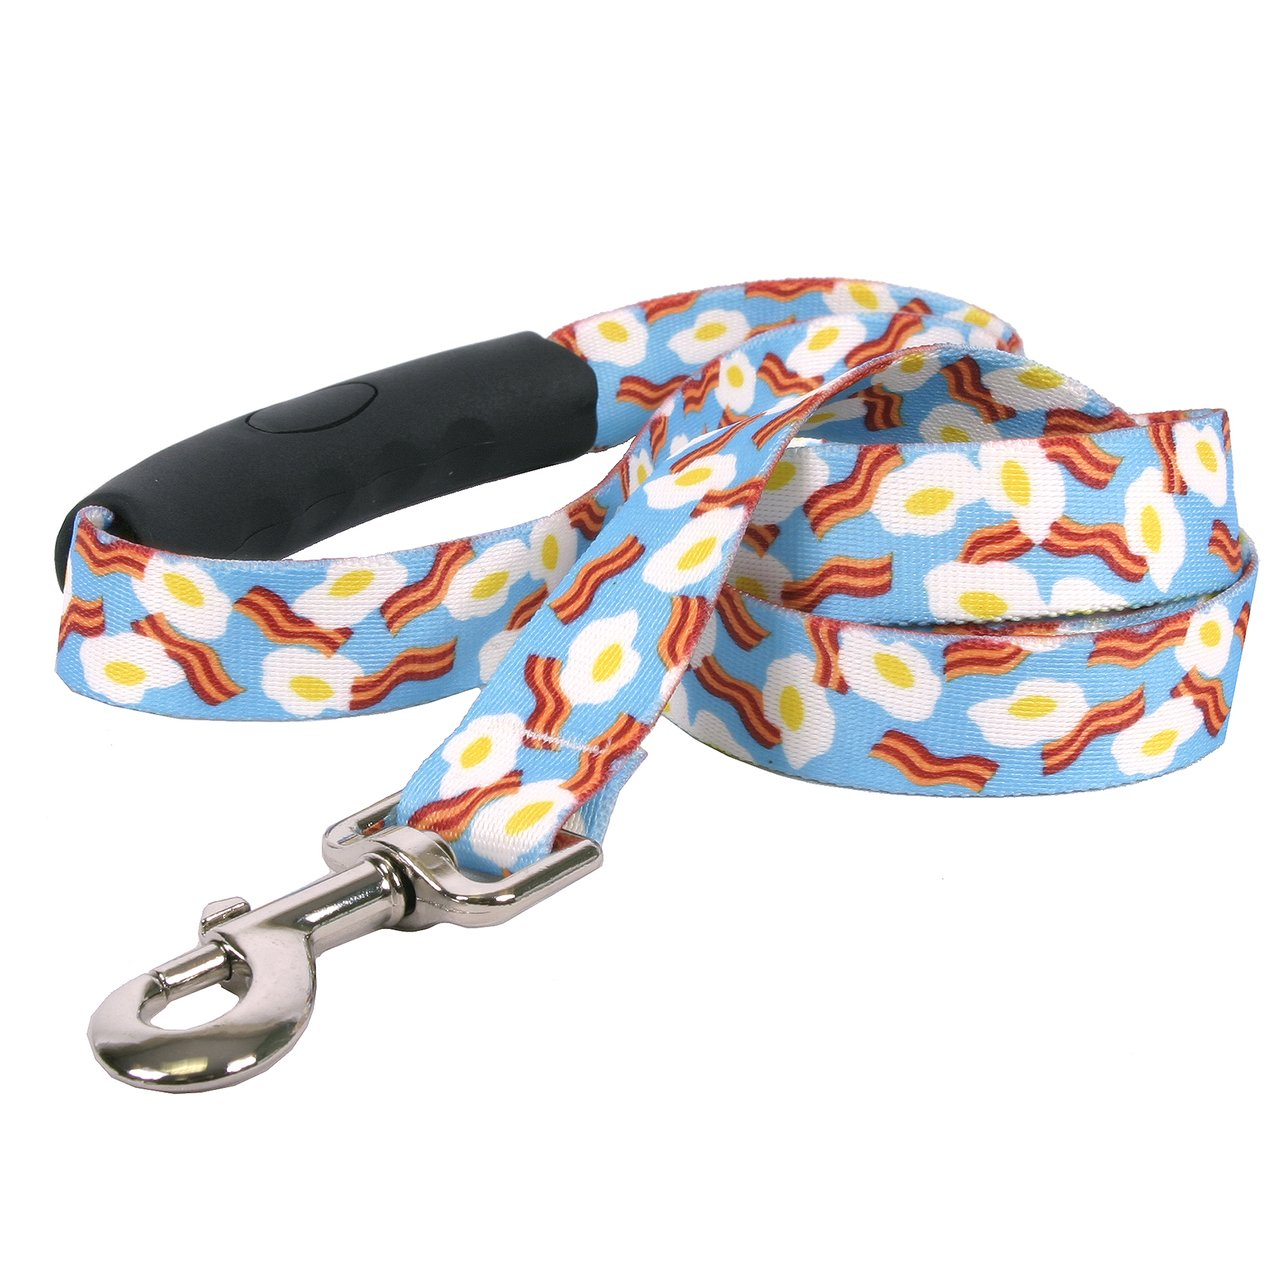 Yellow Dog Design Bacon and Eggs EZ-Grip Dog Leash with Comfort Handle, Small/Medium by Yellow Dog Design